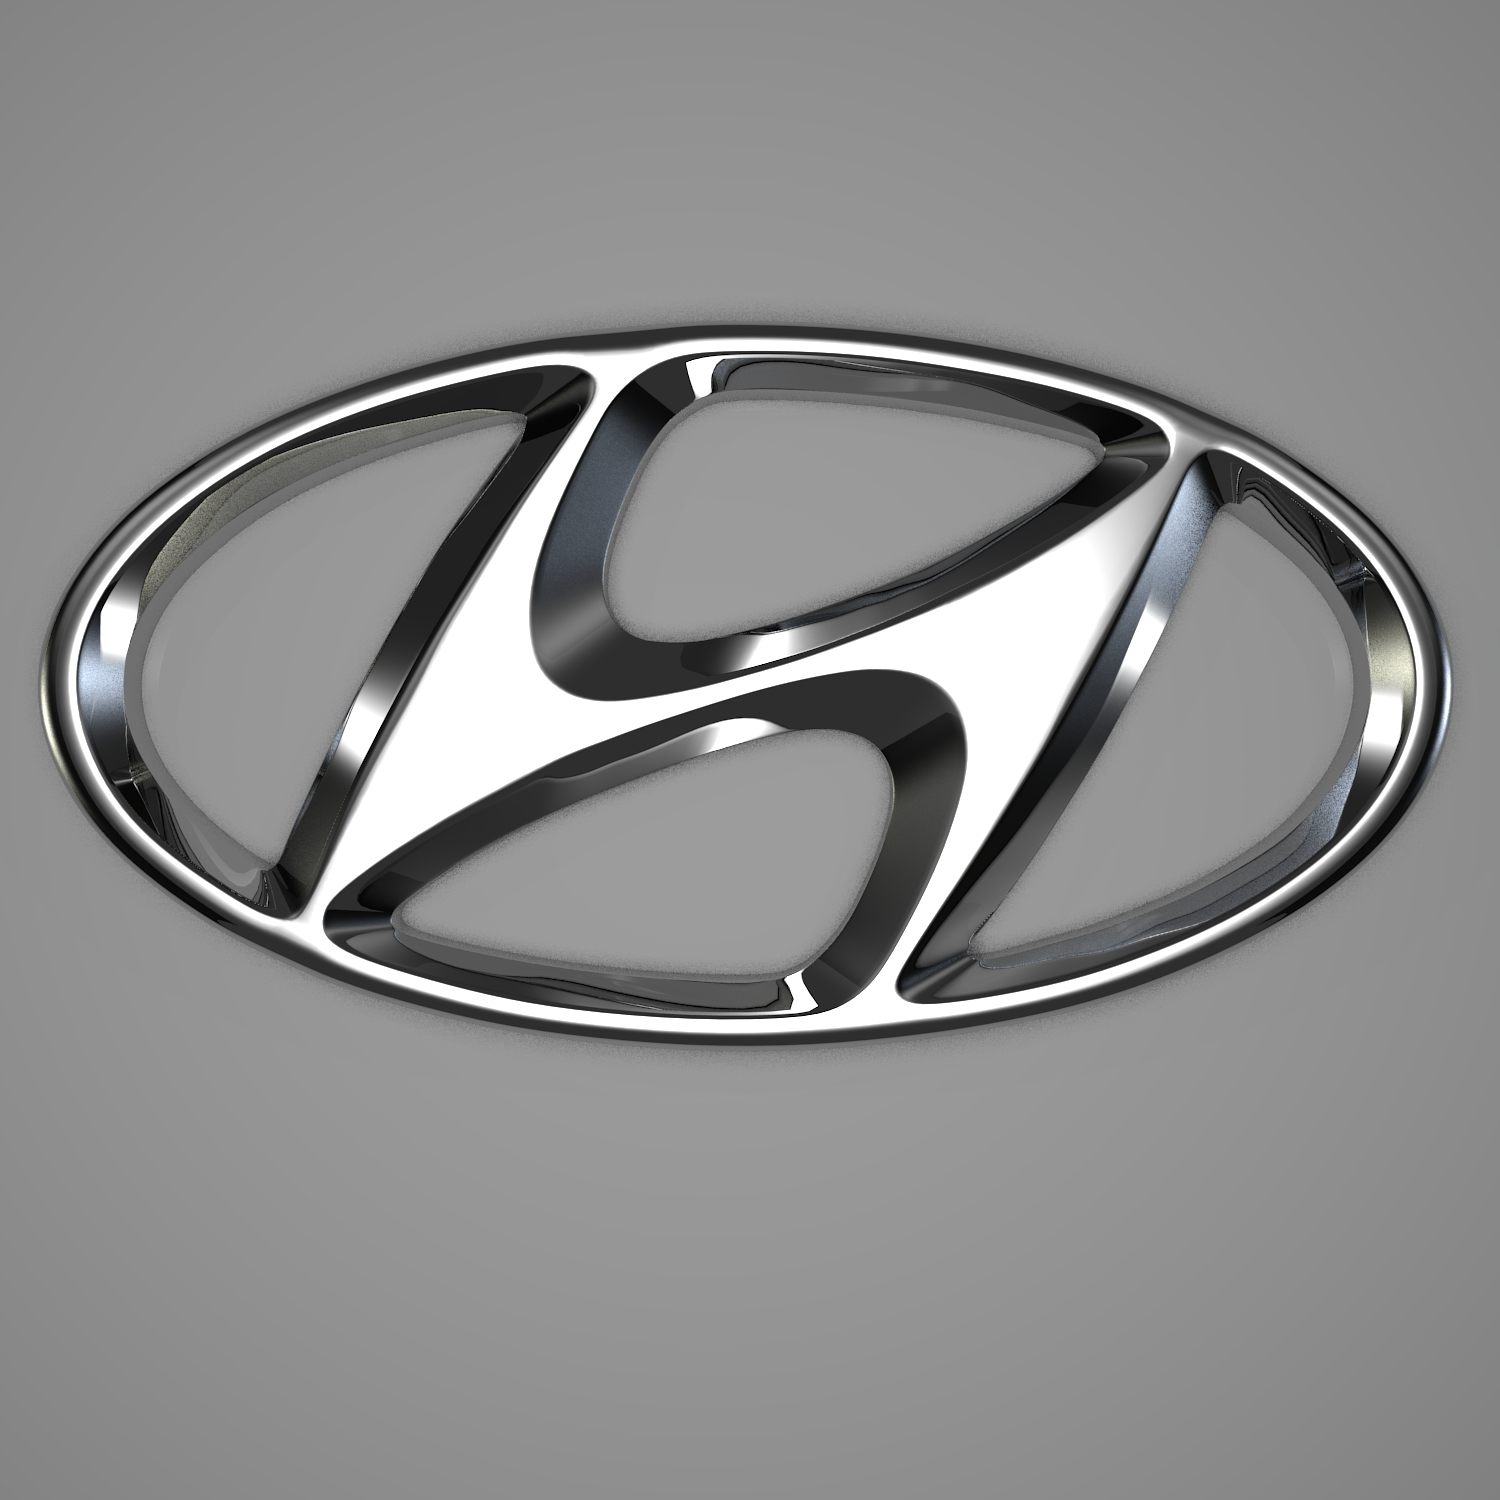 Hyundai Logo Huyndai Car Symbol Meaning And History Car Brand